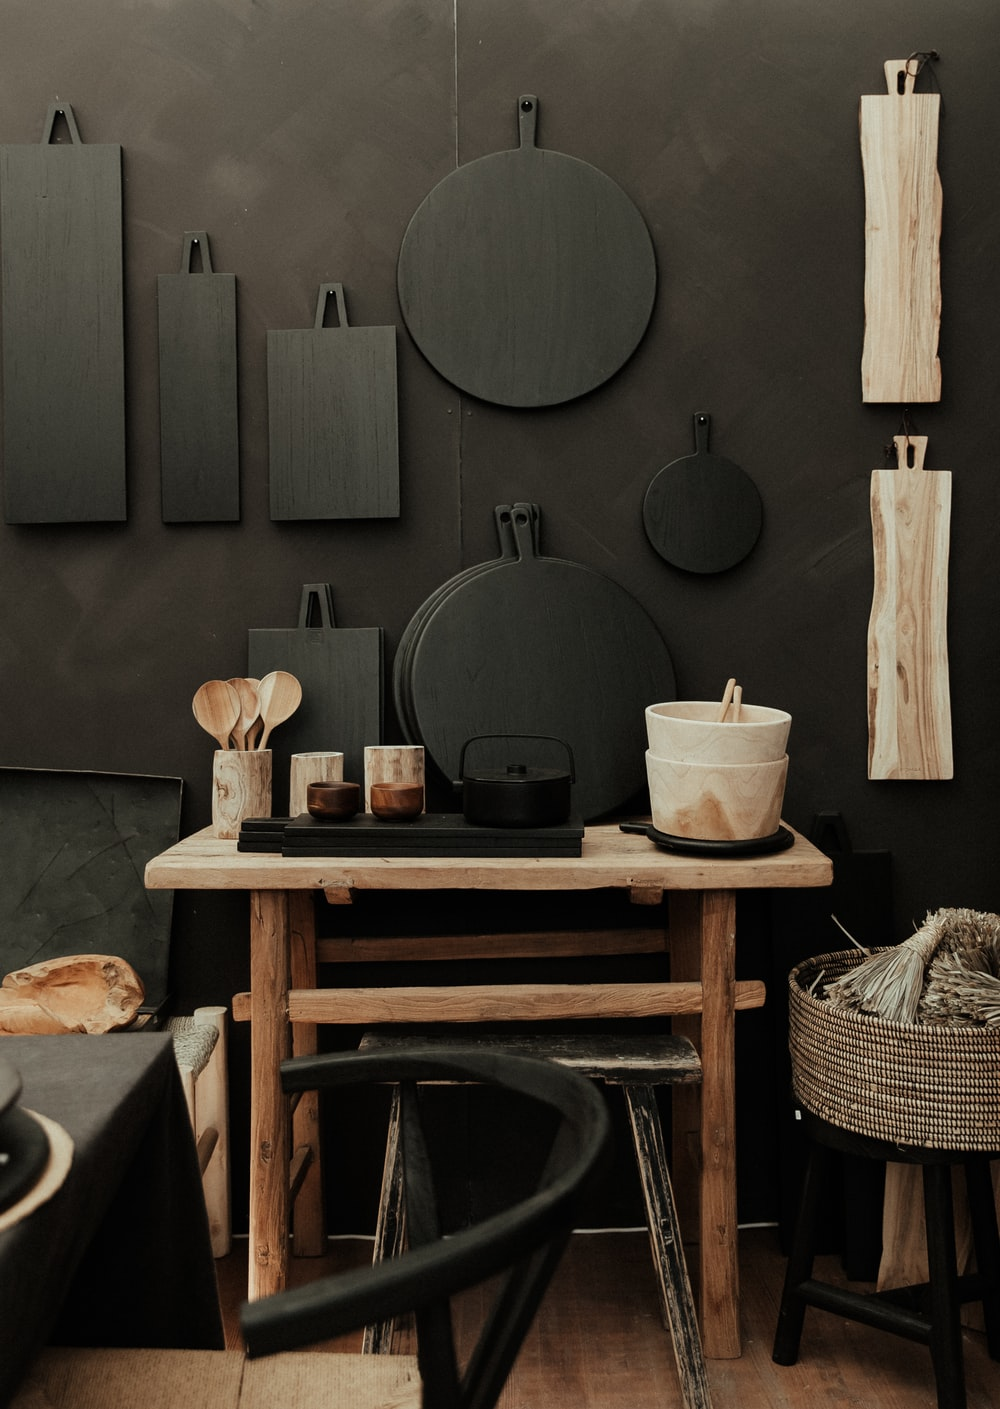 black cooking pot on brown wooden table